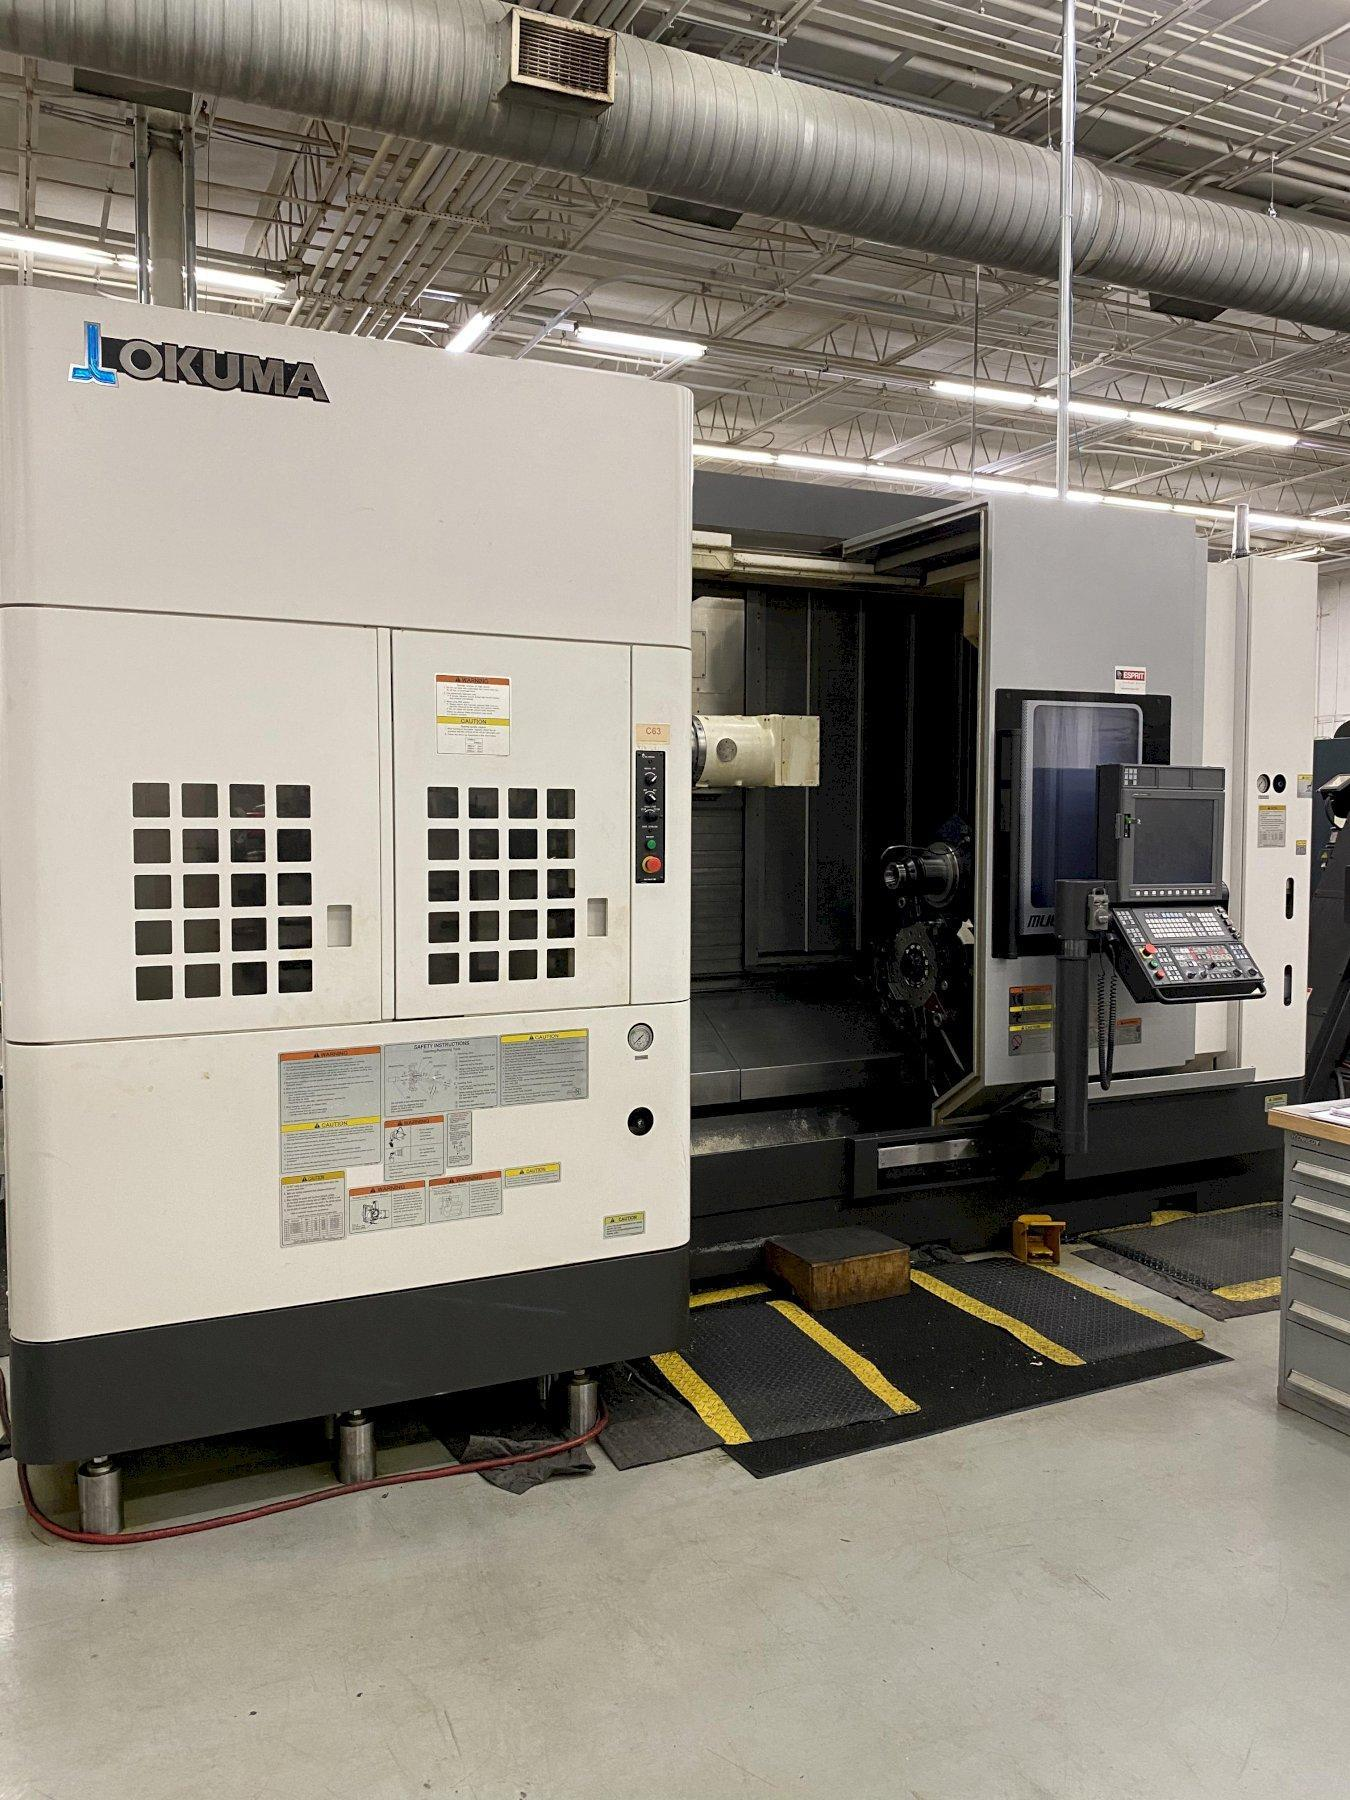 "Okuma Multus U3000 CNC MultiTasking Lathe, OSP P300SH Control, 25.6"" Swing, 63"" Centers, X/Y/Z/W/C Axis, 120 ATC, 12 Position Turret, Probes, 1761 Spindle Hours, Tons of Tooling, Collet System, C/C, Turnkey, 2015"